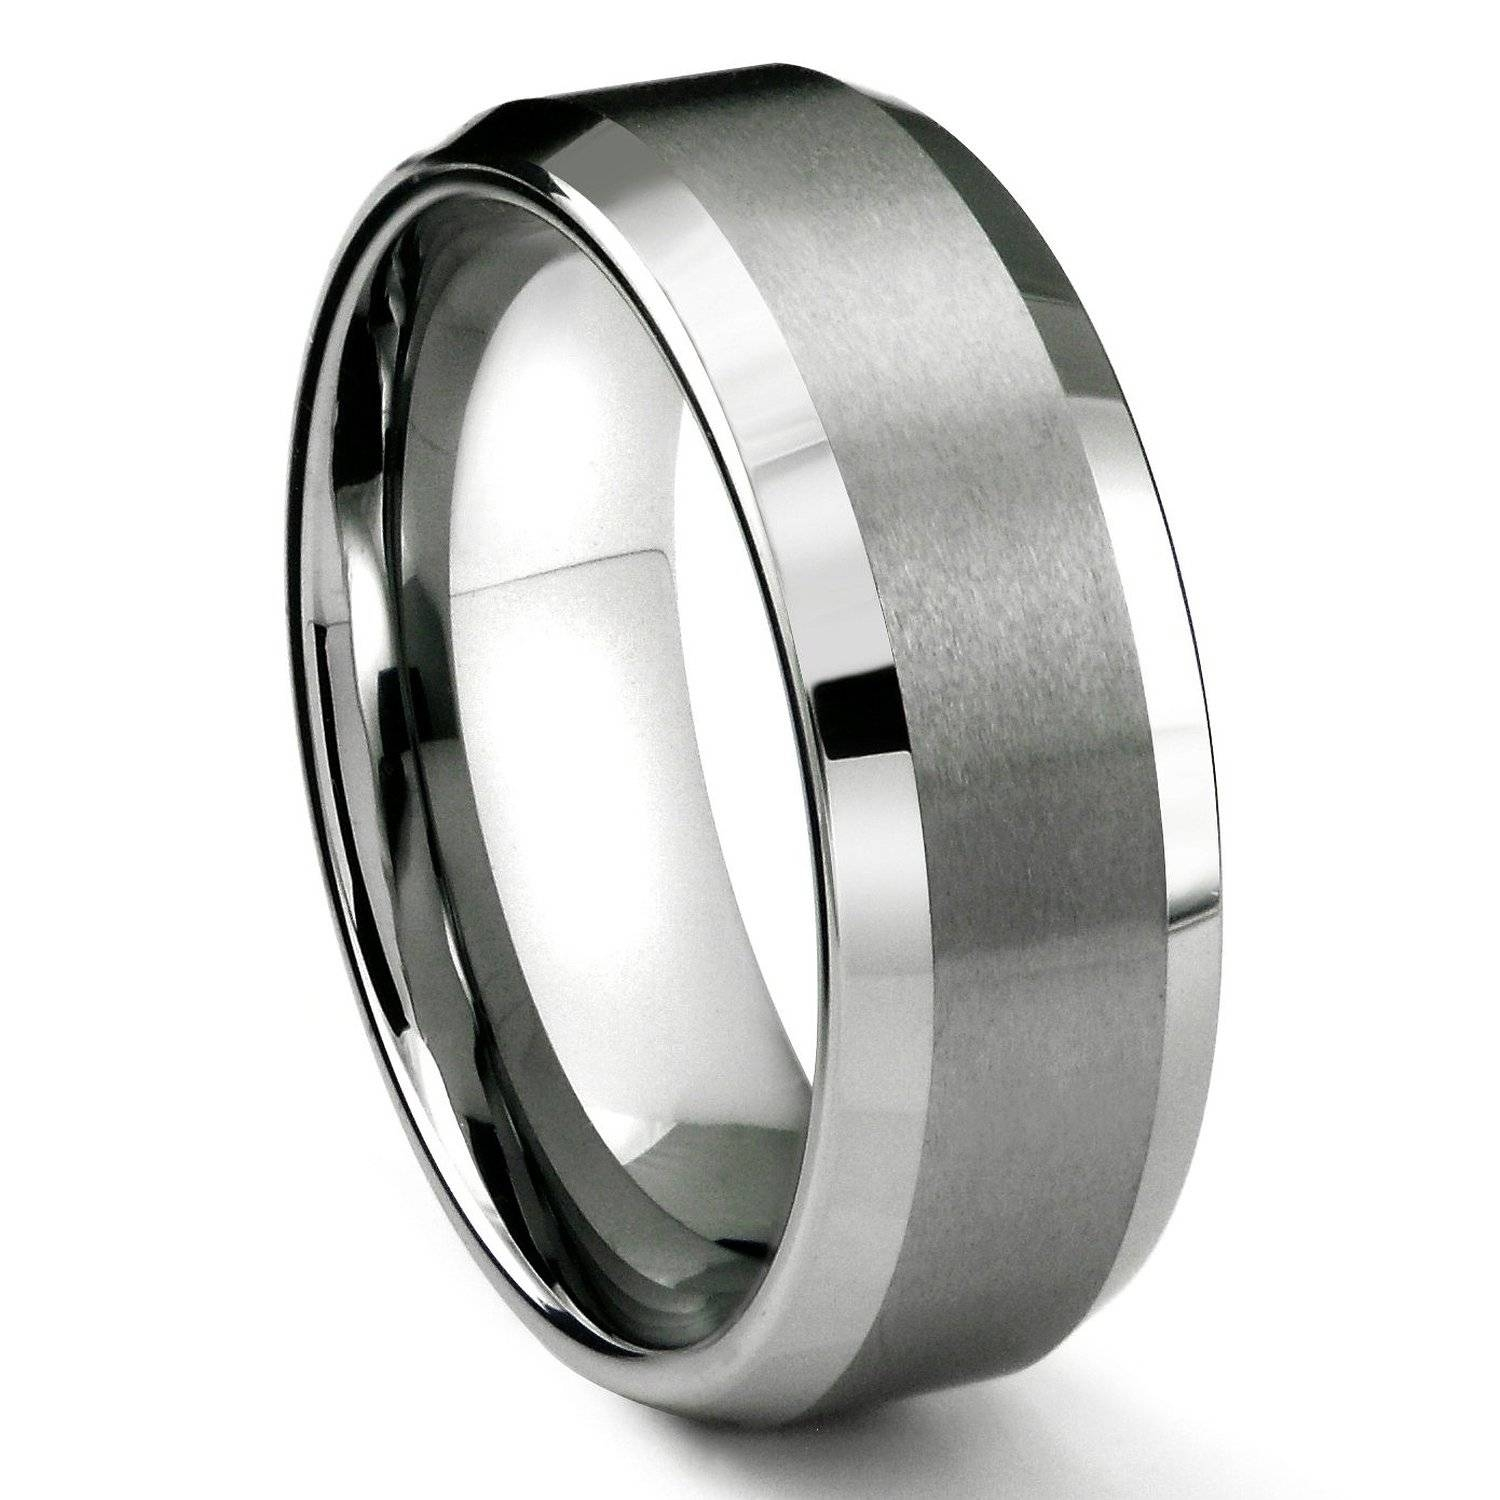 Mens Wedding Ring Throughout Men's Wedding Bands Metals (View 11 of 15)